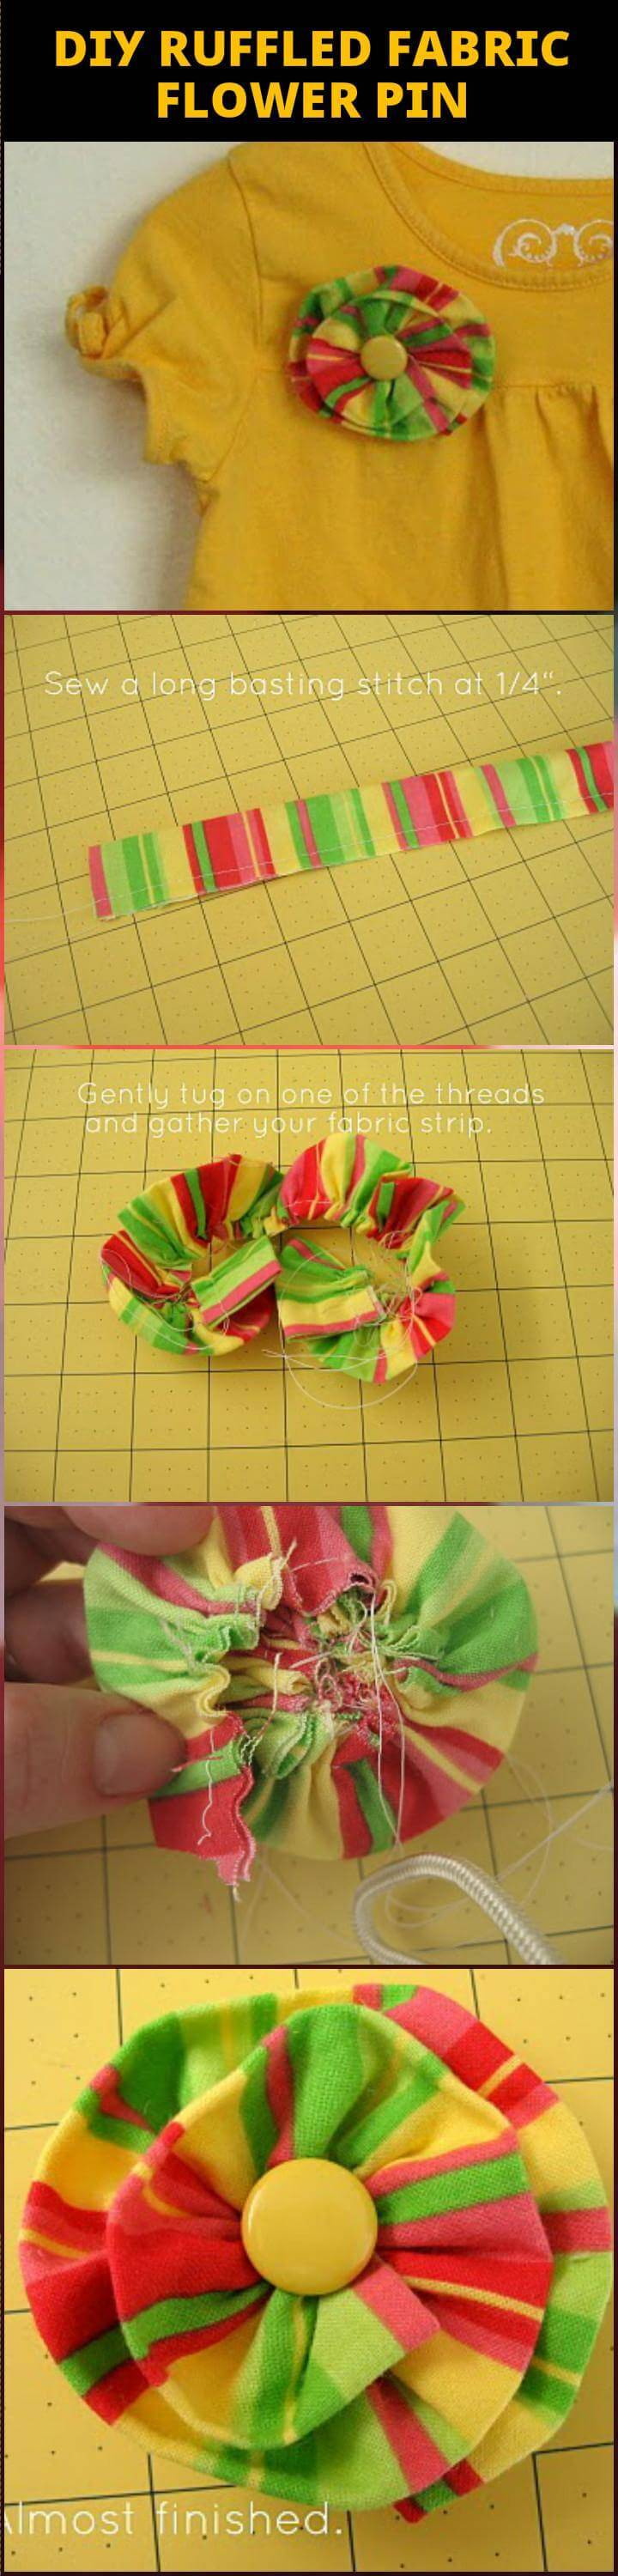 50 Easy Fabric Flowers Tutorial Make Your Own Fabric Flowers Diy